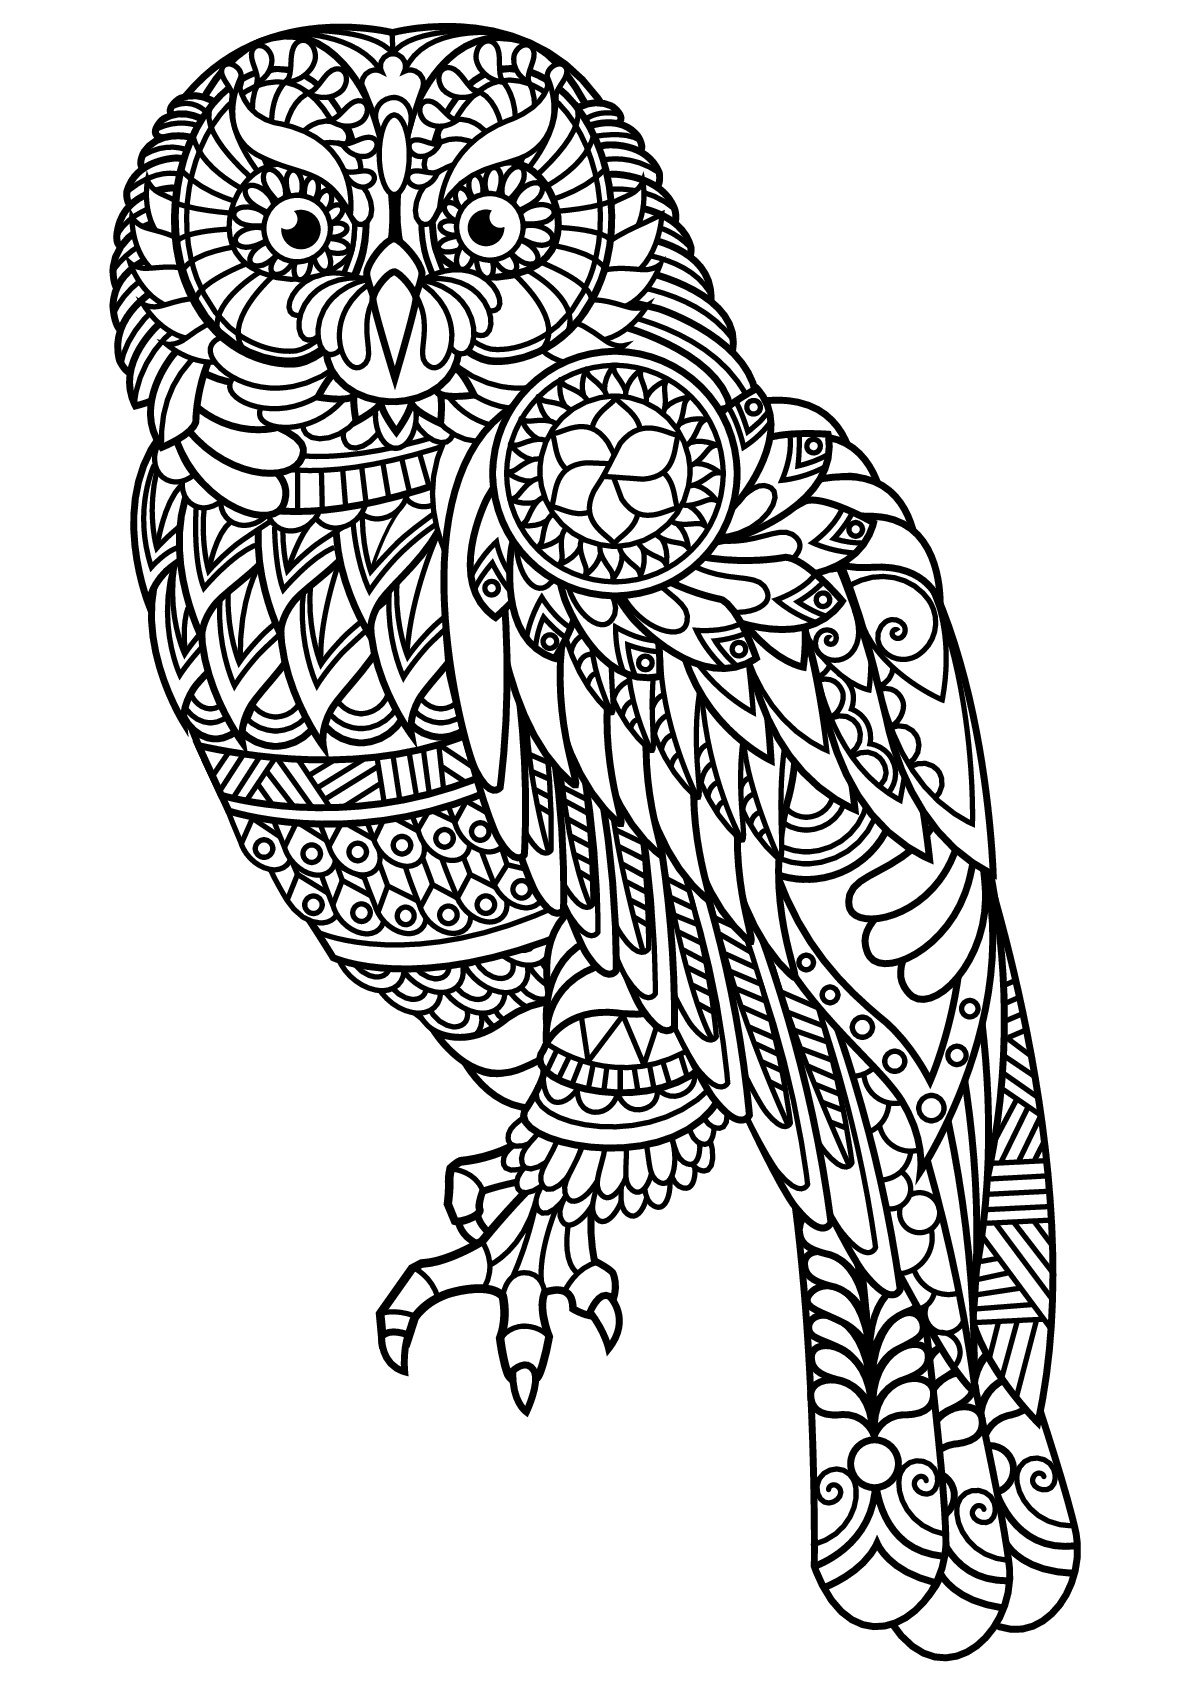 Free book owl - Owls Adult Coloring Pages